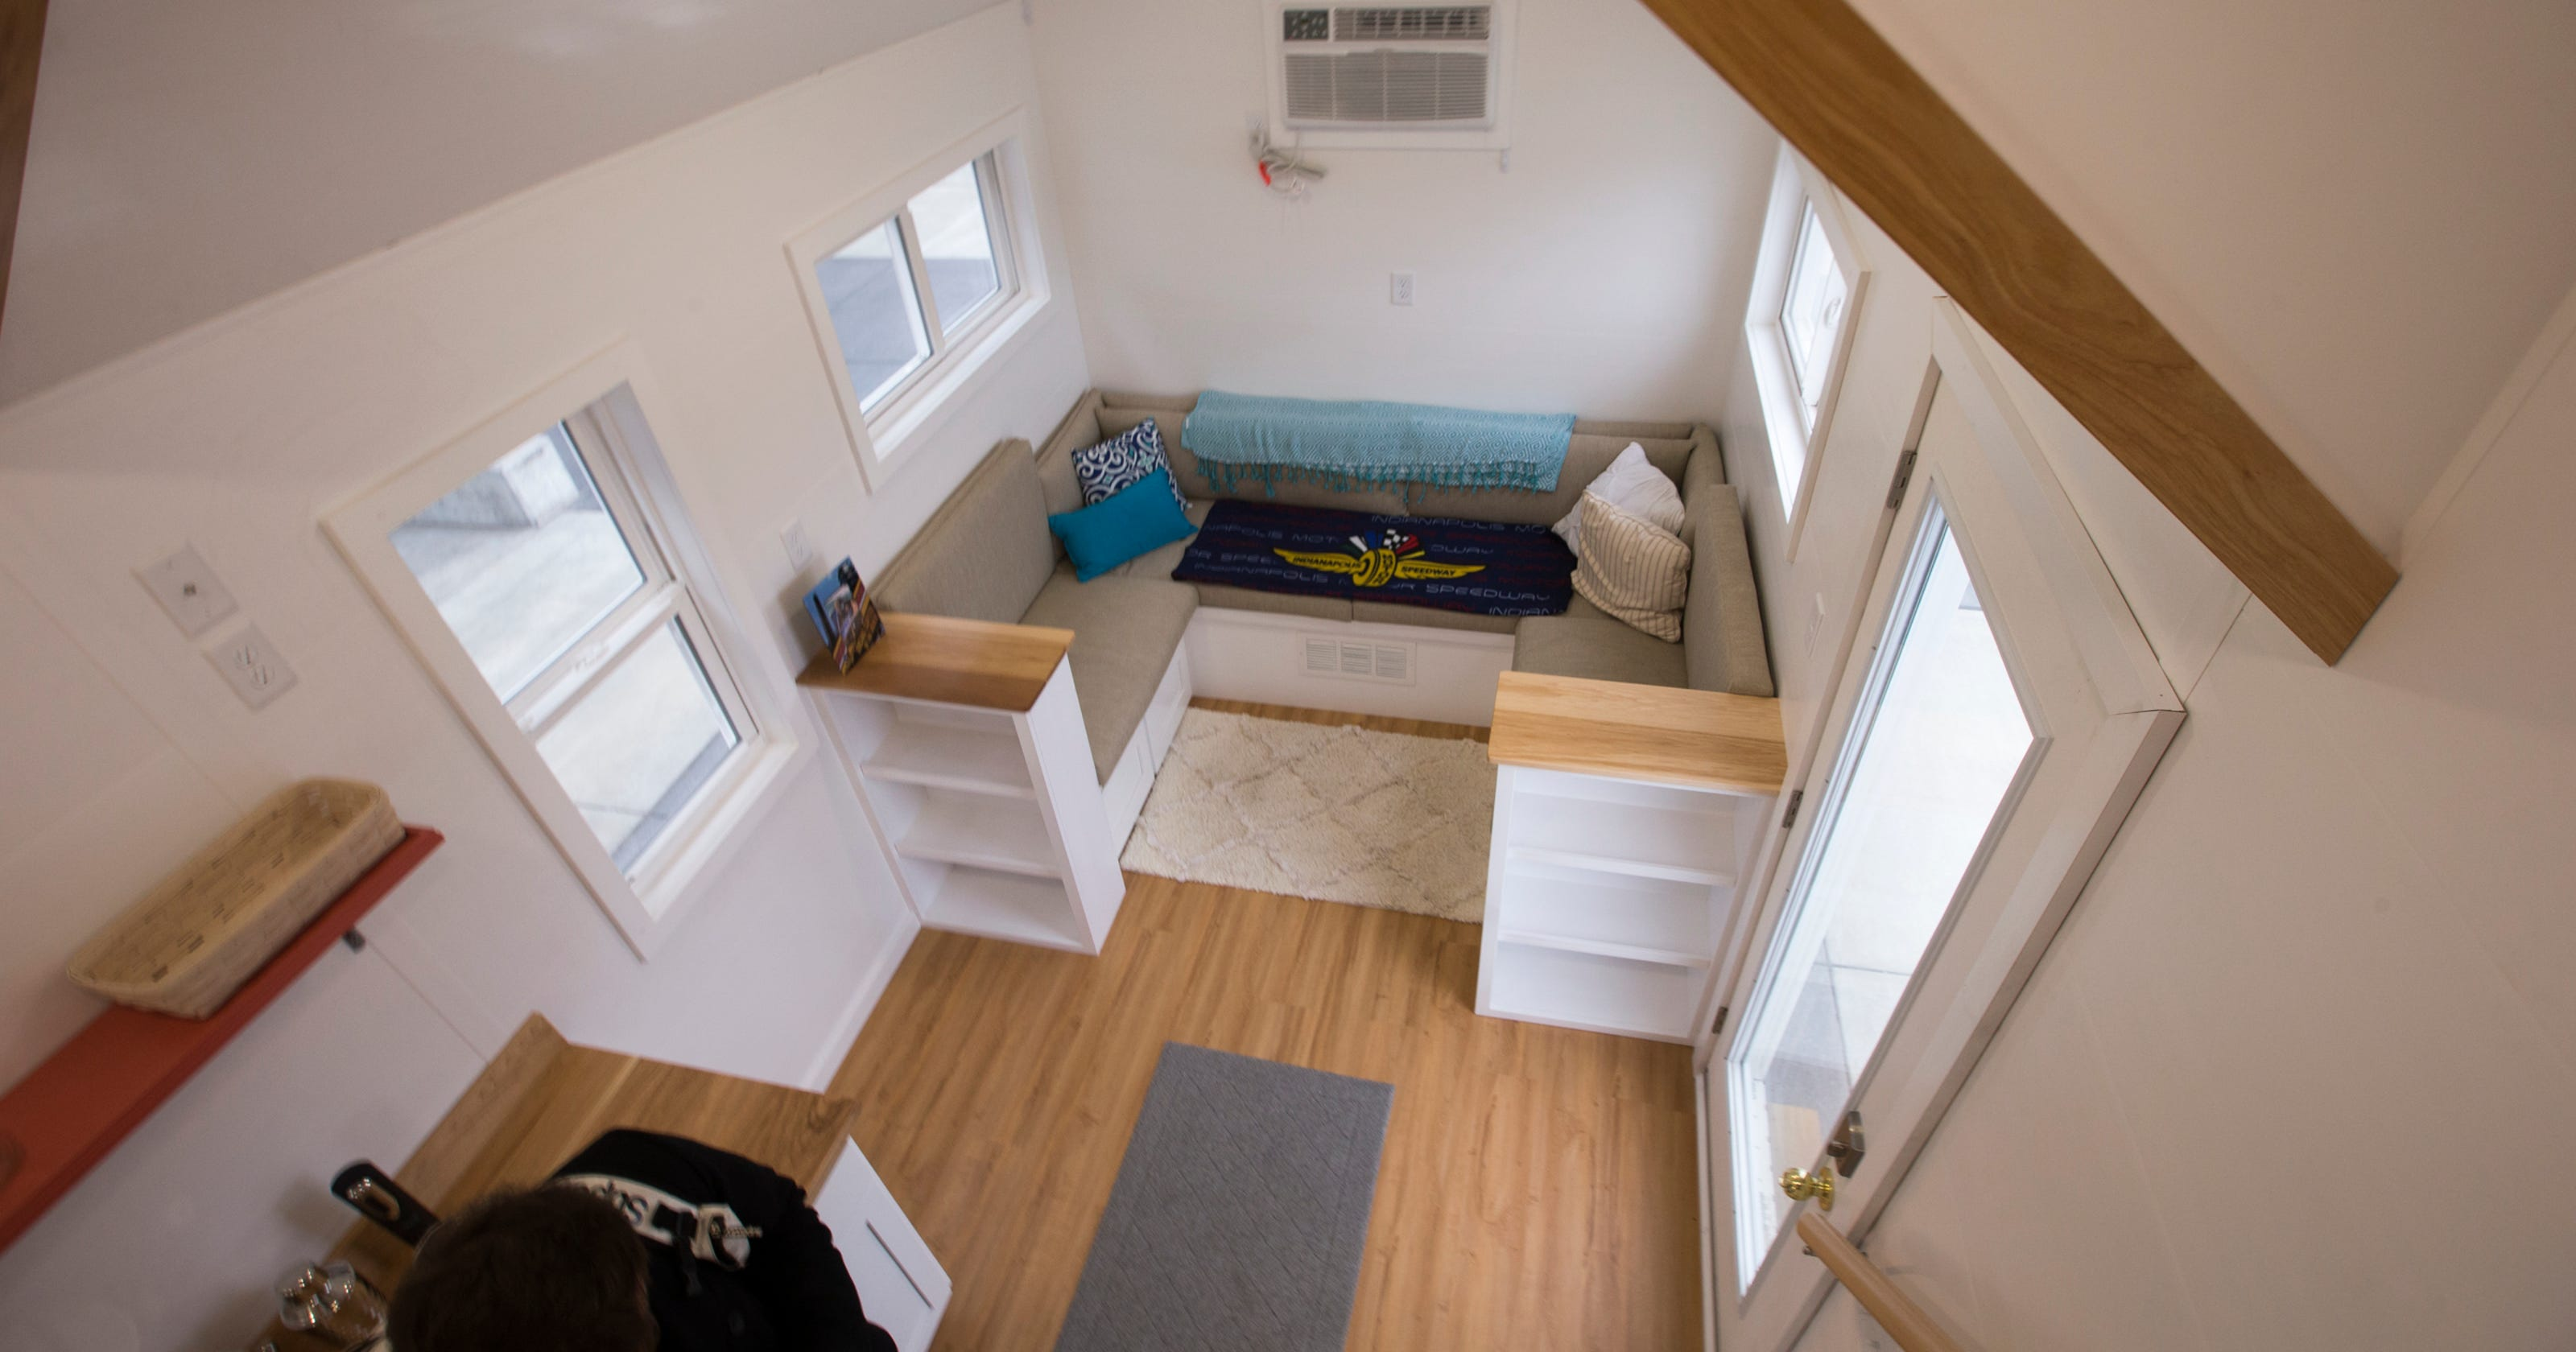 indy 500 lodging tiny home hotels offer new experience at ims. Black Bedroom Furniture Sets. Home Design Ideas